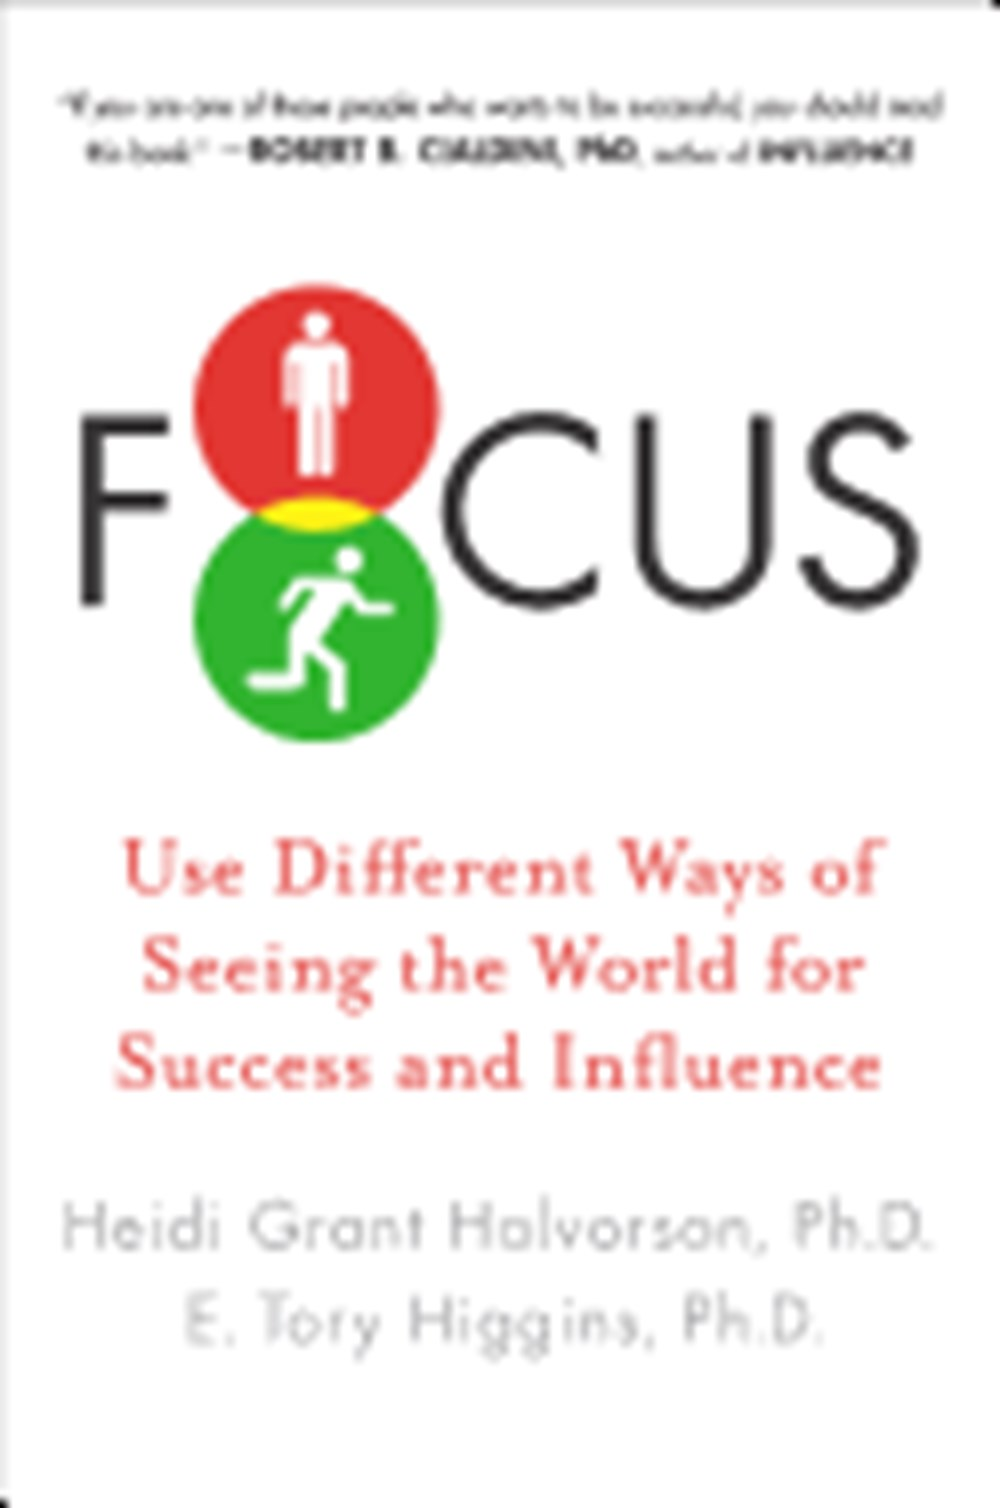 Focus Use Different Ways of Seeing the World for Success and Influence